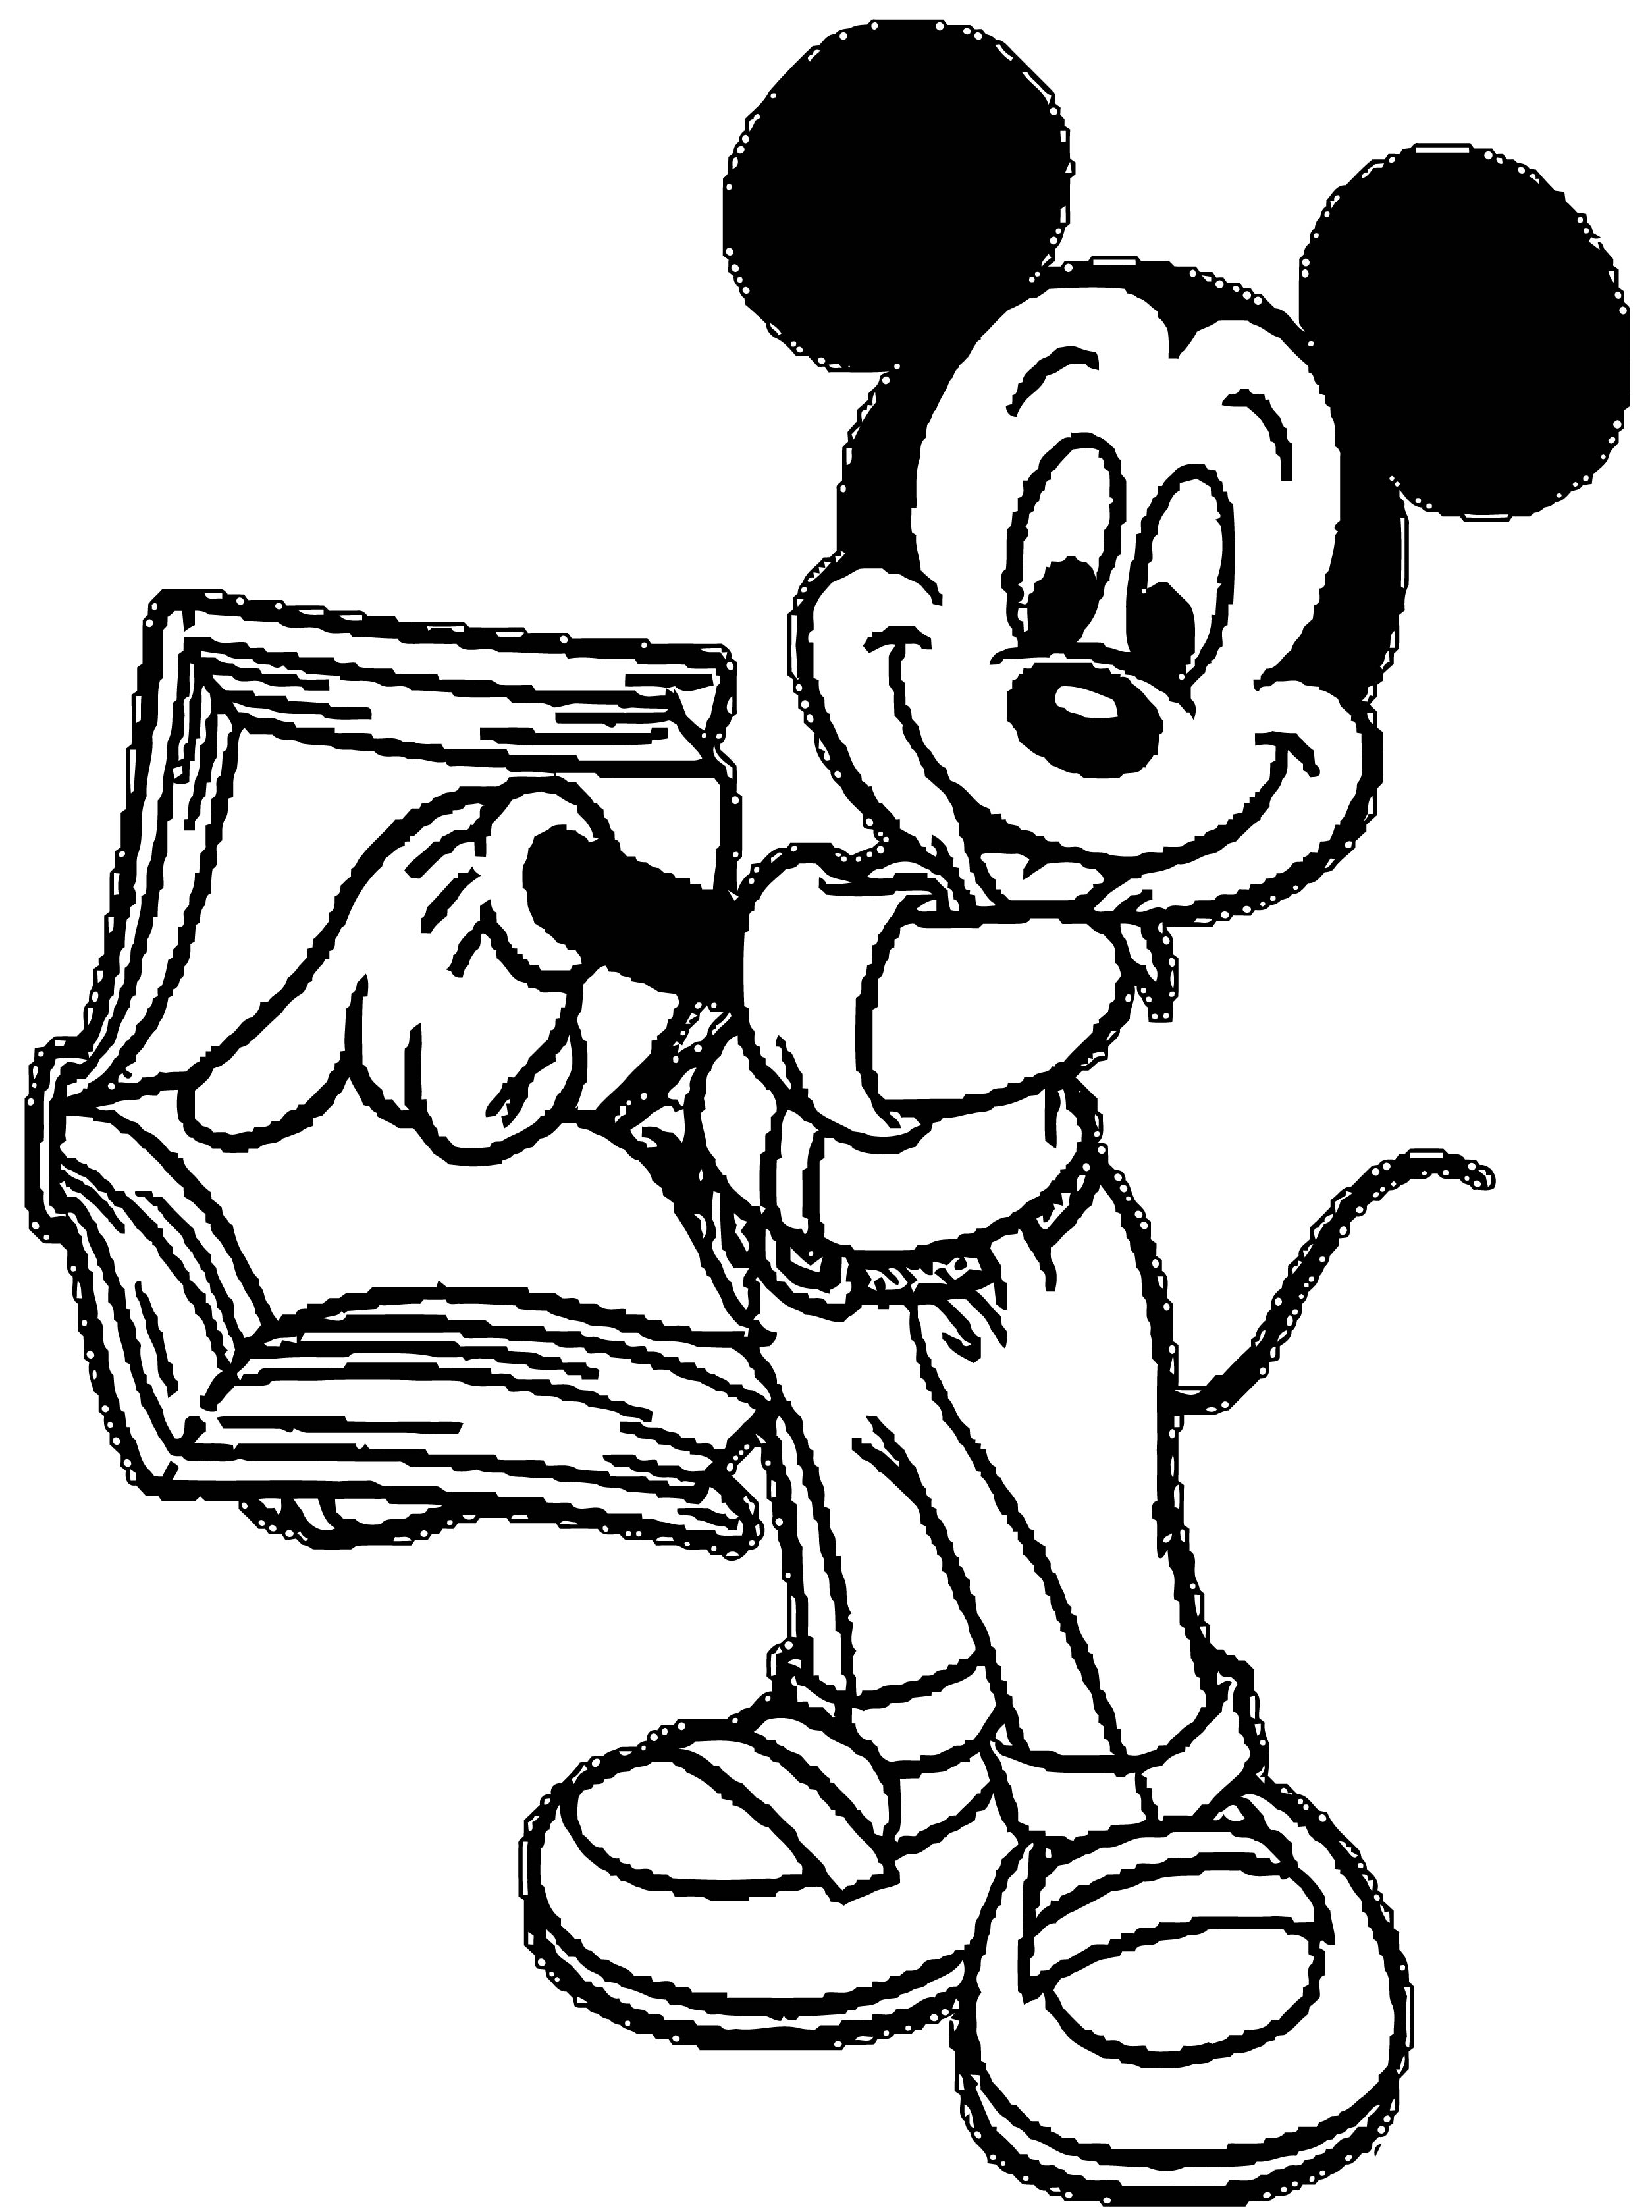 Mickey Mouse Cartoon Coloring Page Wecoloringpage 096